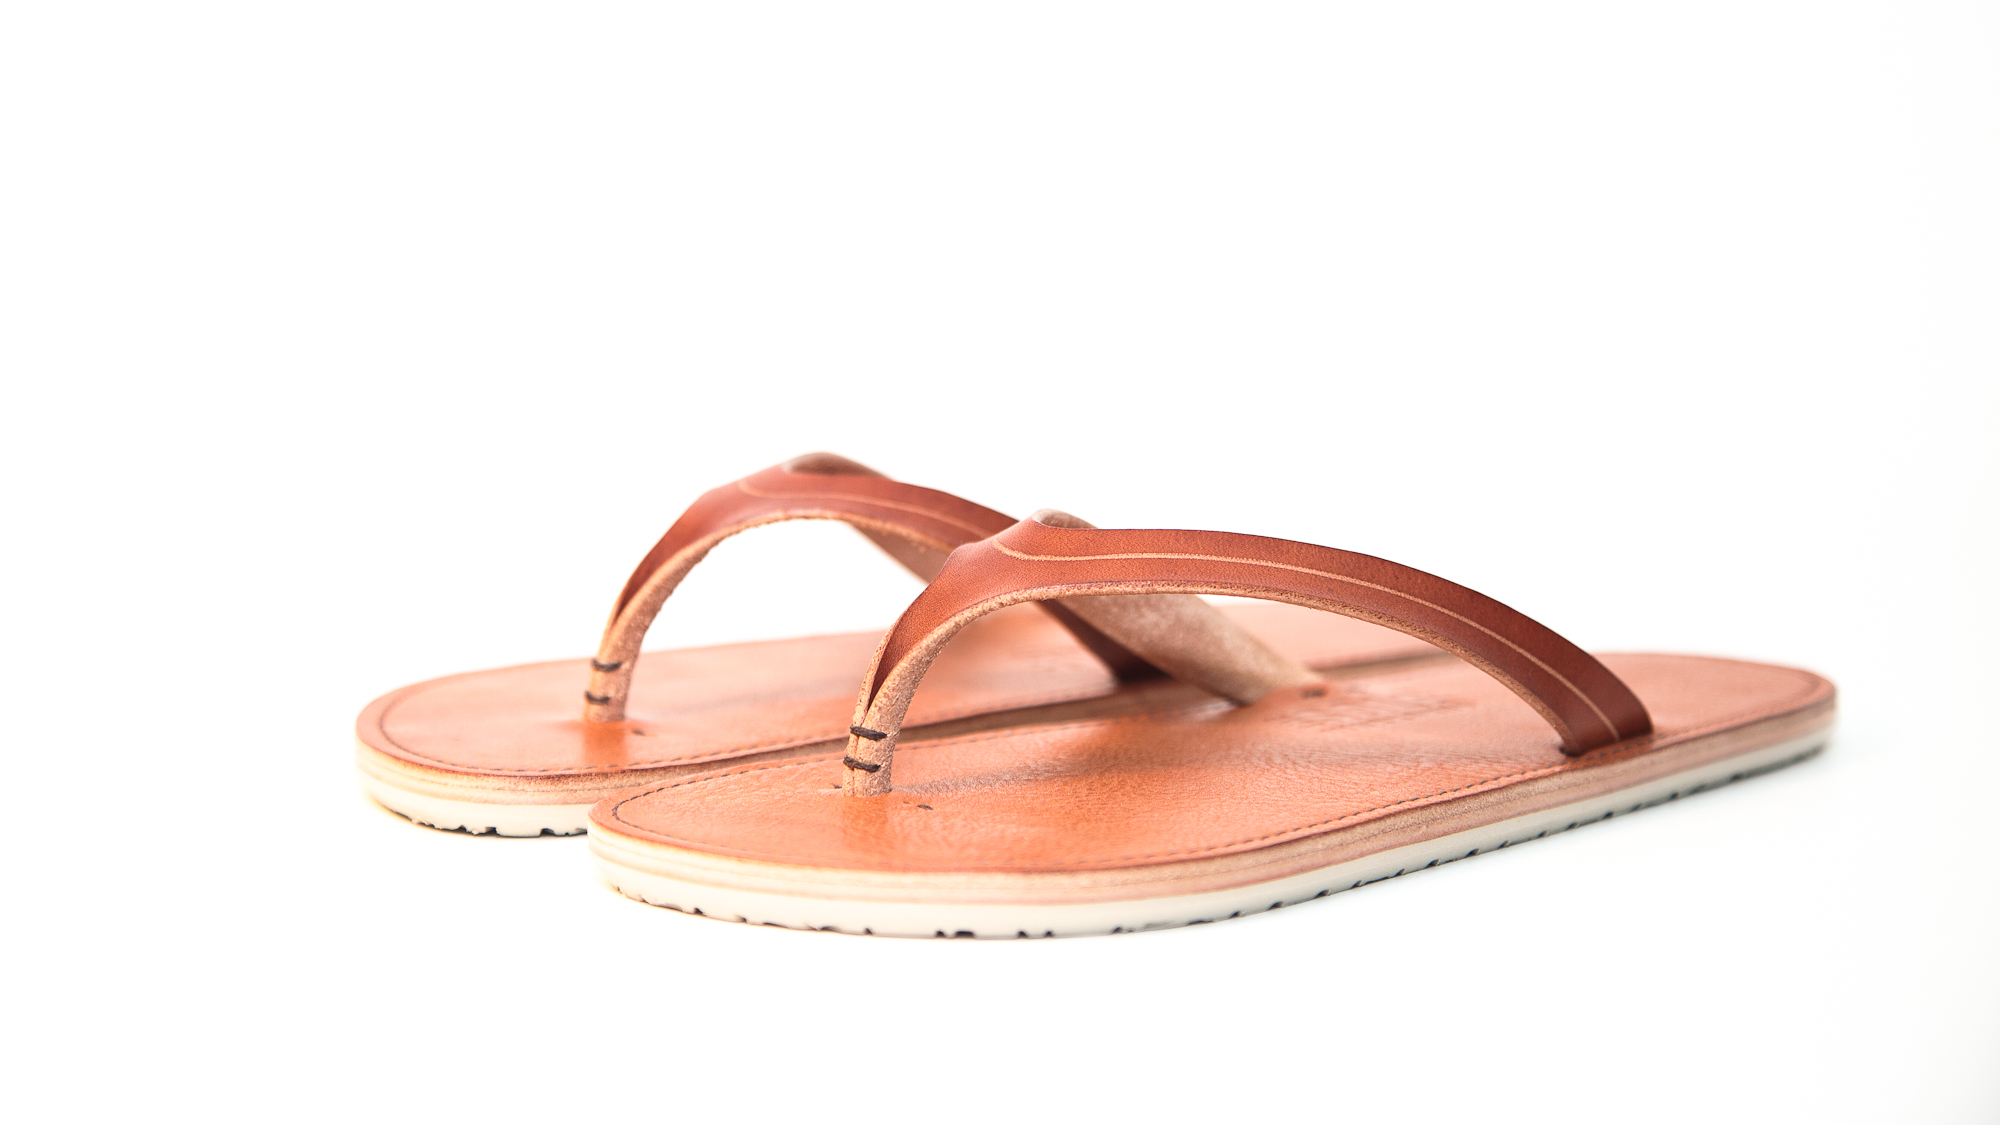 Leather Sandals by The Sole Workshop